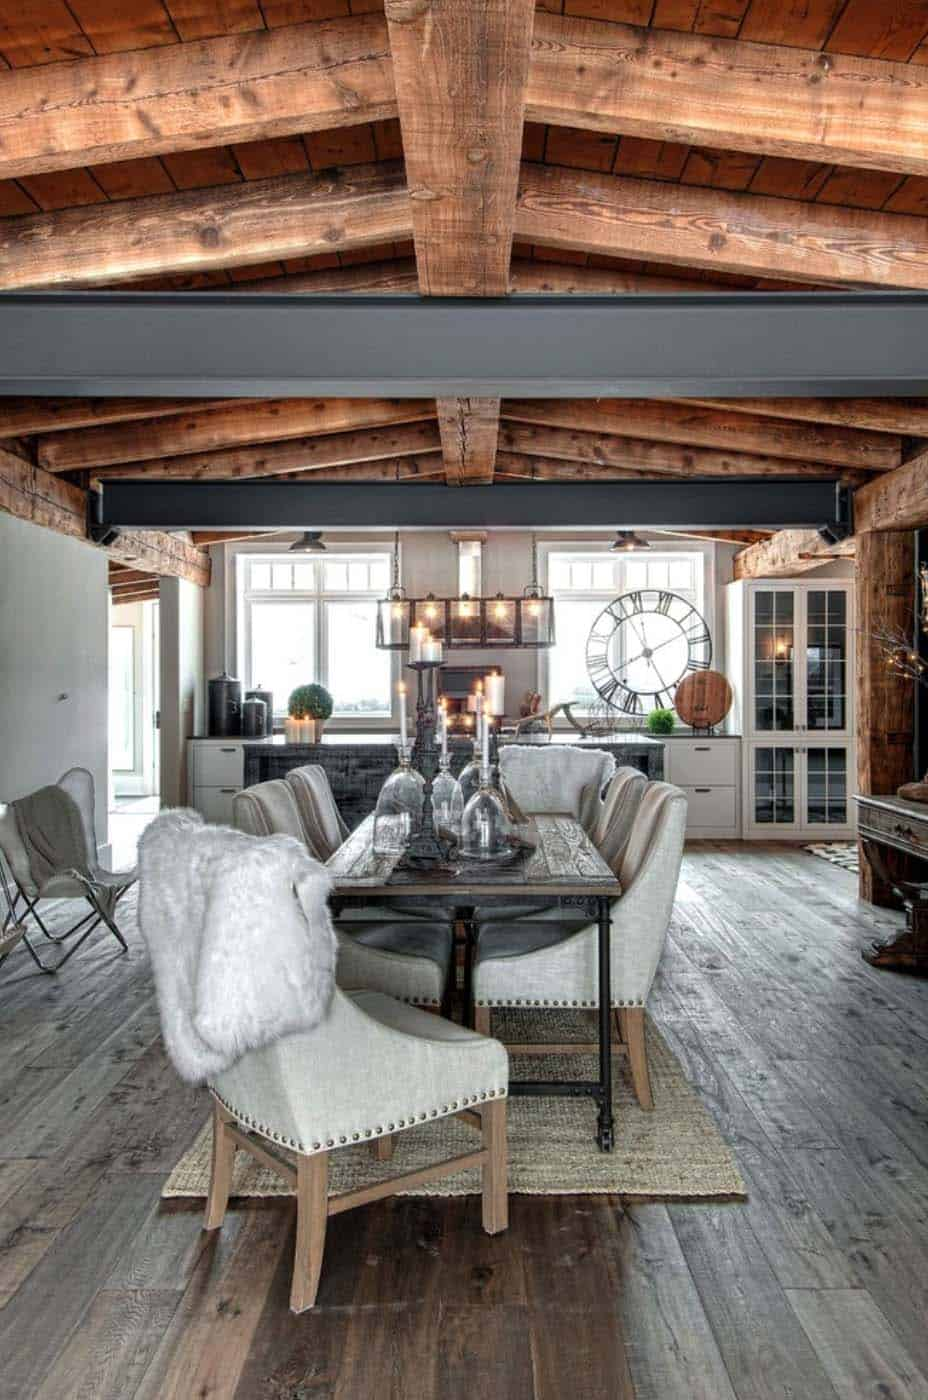 Rustic-Modern-Design-Timberworx Custom Homes-11-1 Kindesign